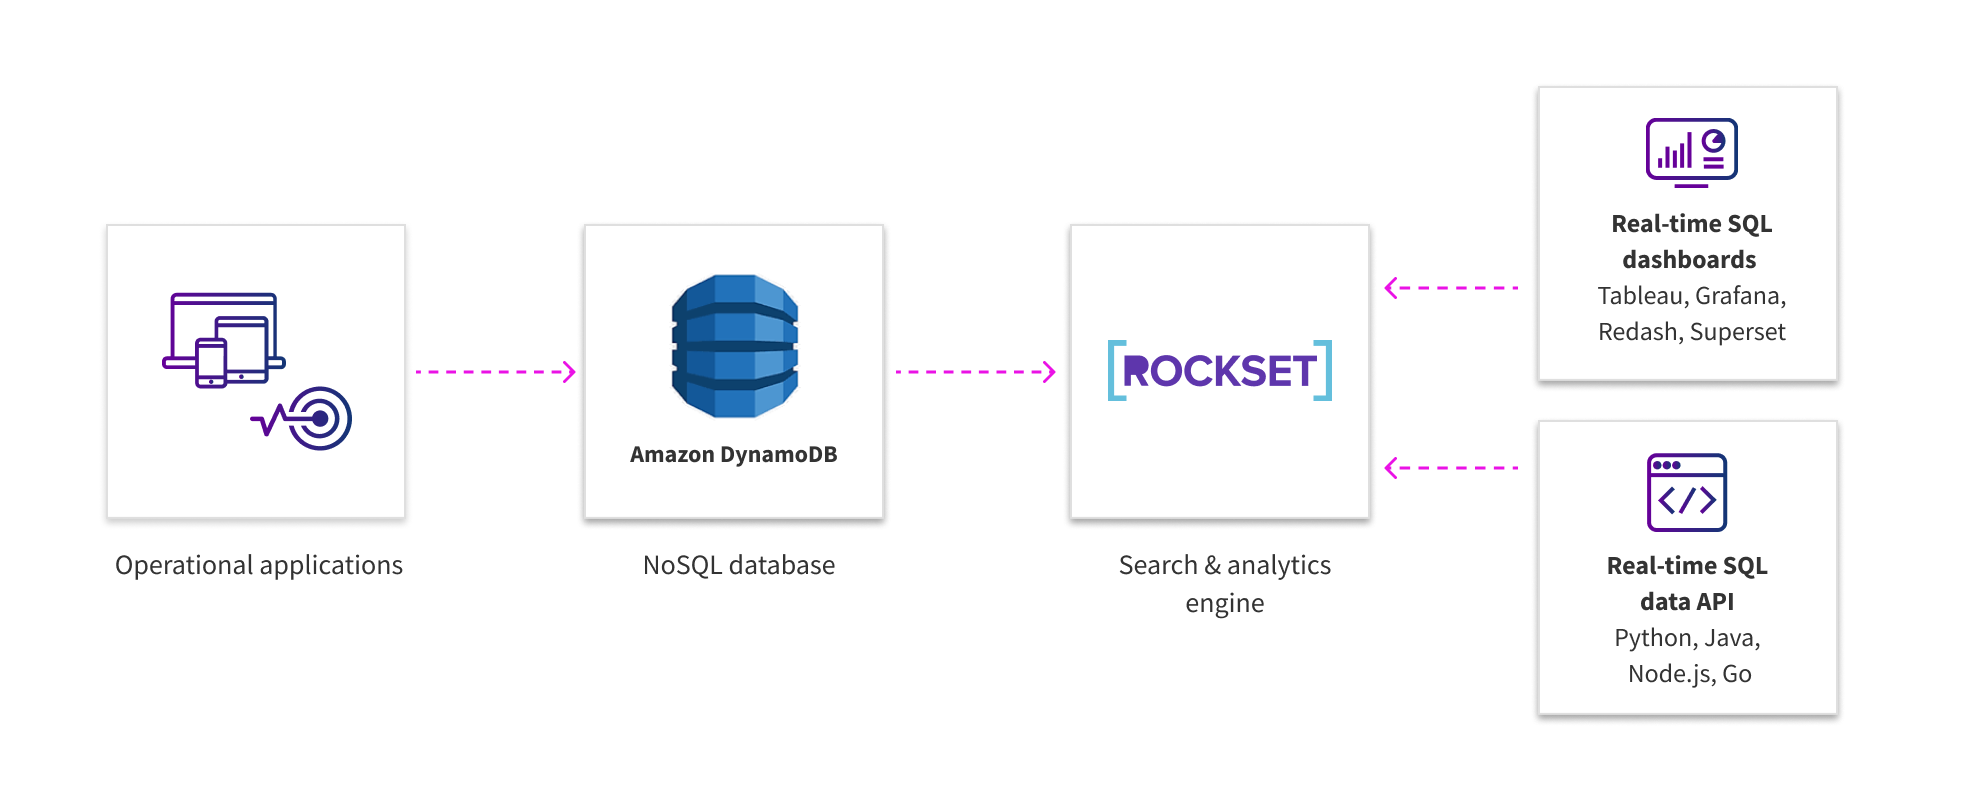 5 Use Cases for DynamoDB | Rockset